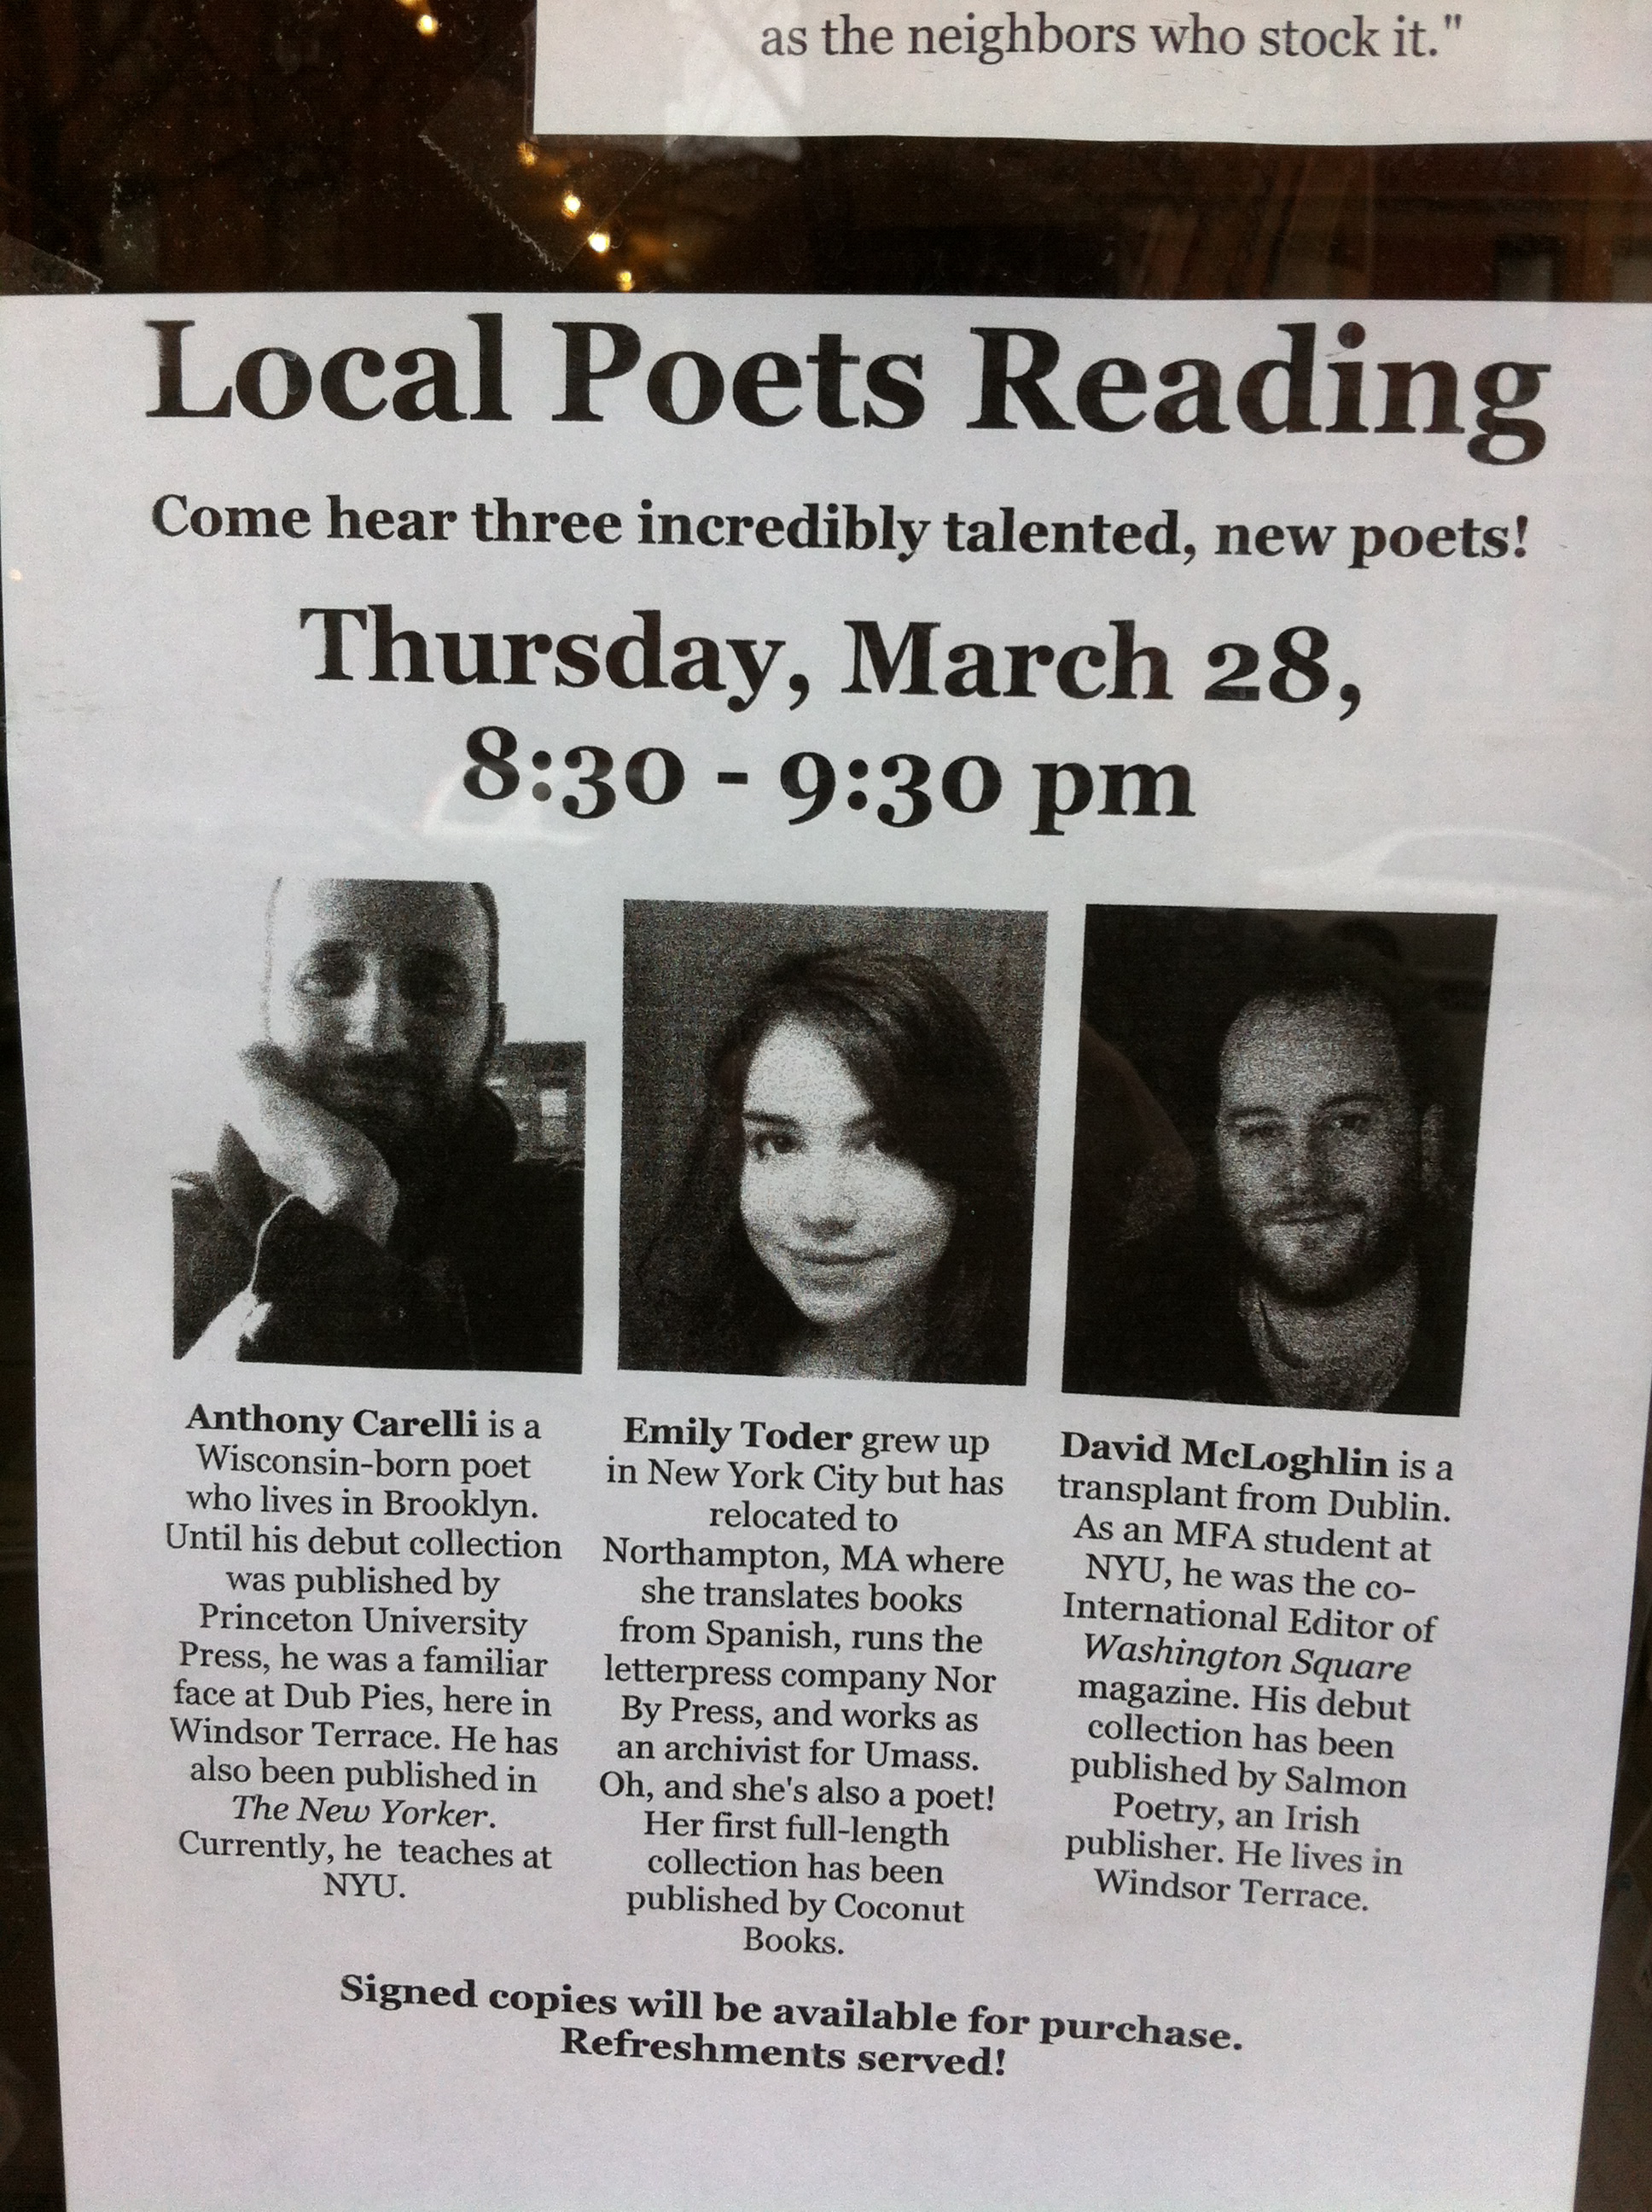 Emily Toder, Anthony Carelli, and David McLoghlin Read!